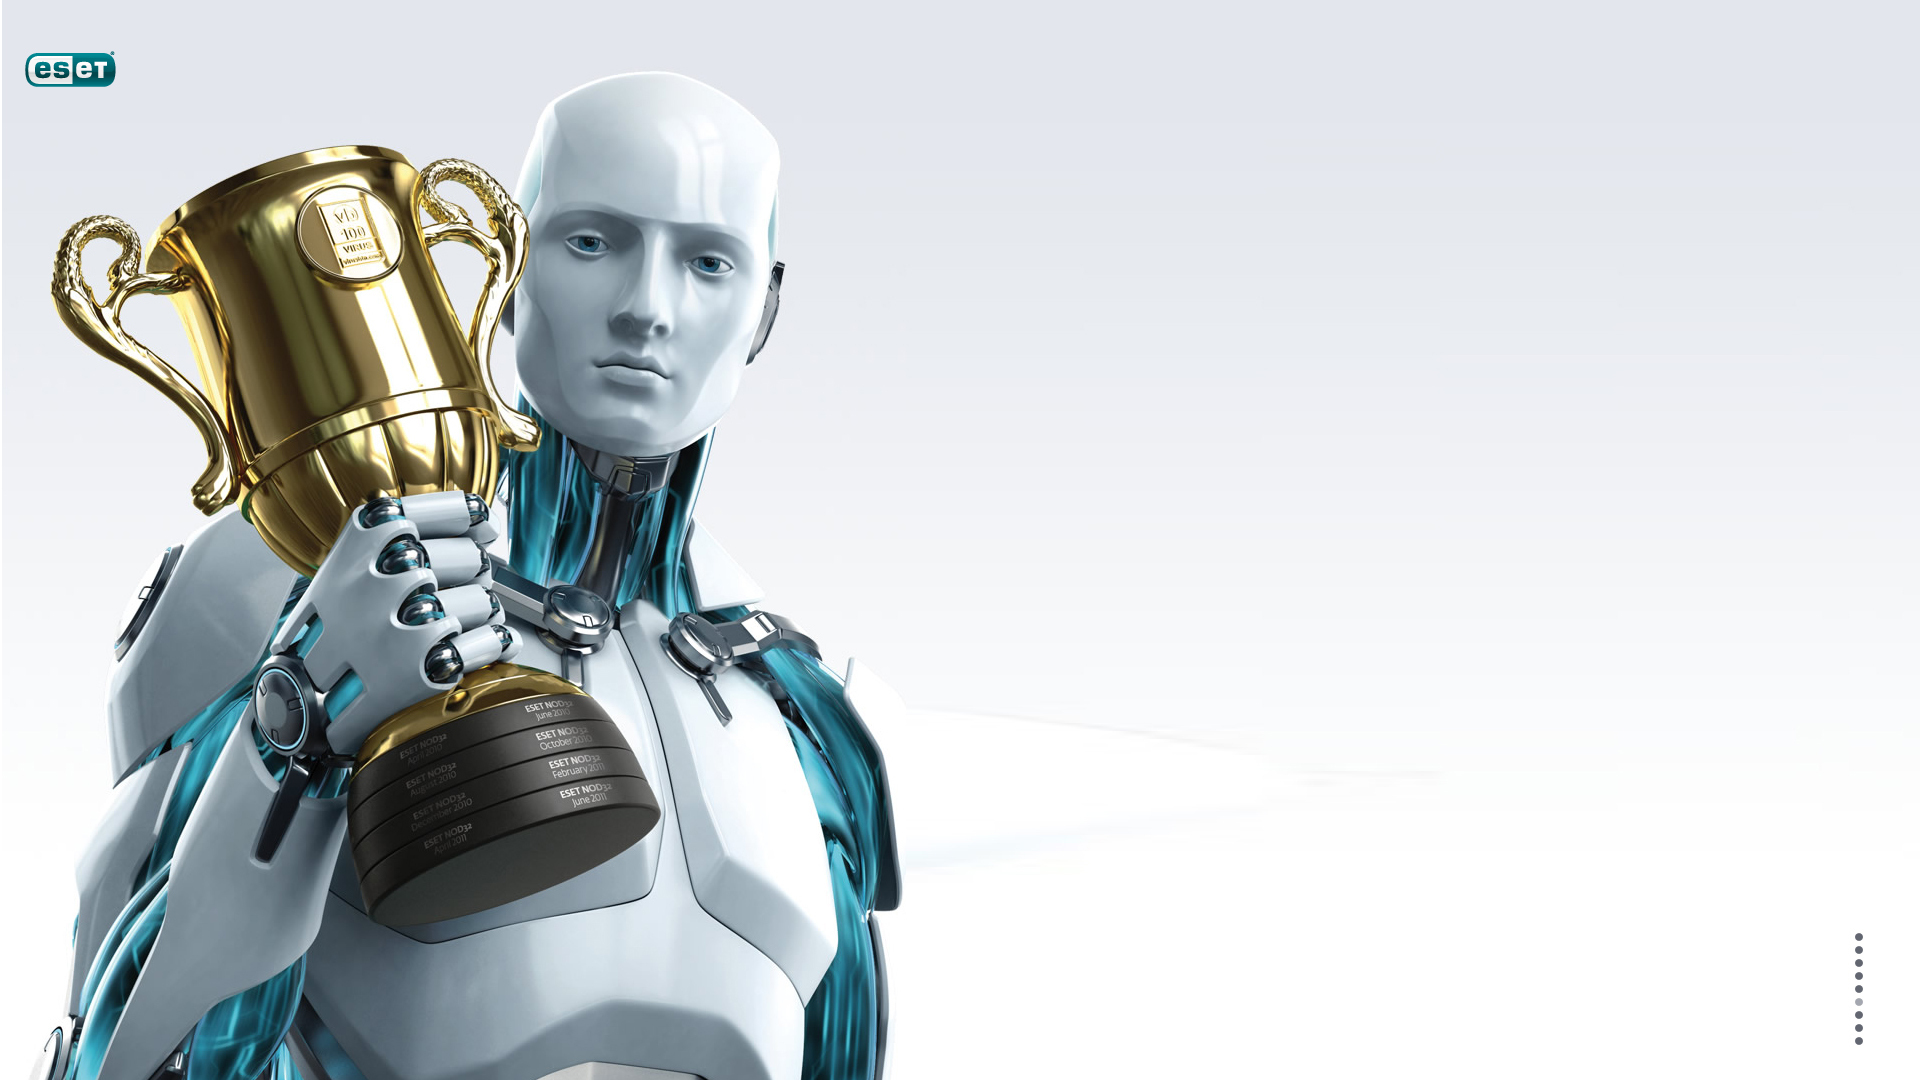 1 Eset Hd Wallpapers Backgrounds Wallpaper Abyss